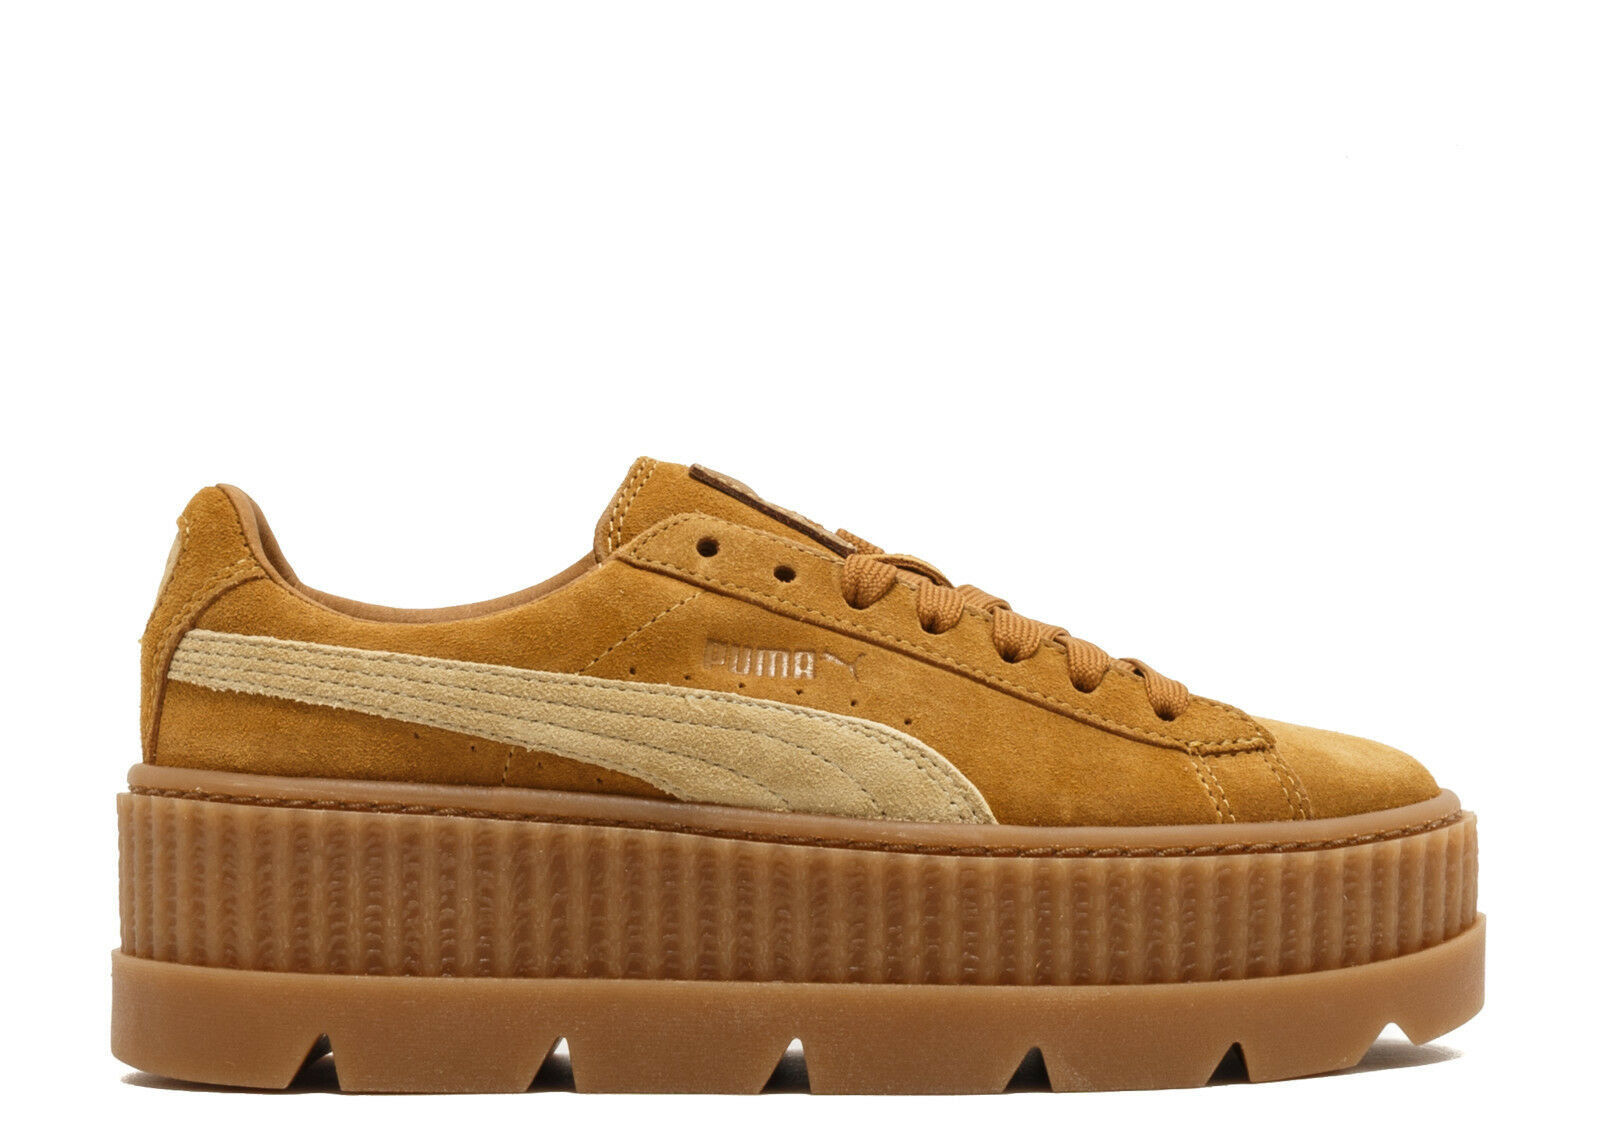 Puma Fenty x Rihanna Cleated Creeper Suede womens platform shoes 366268 02 brown